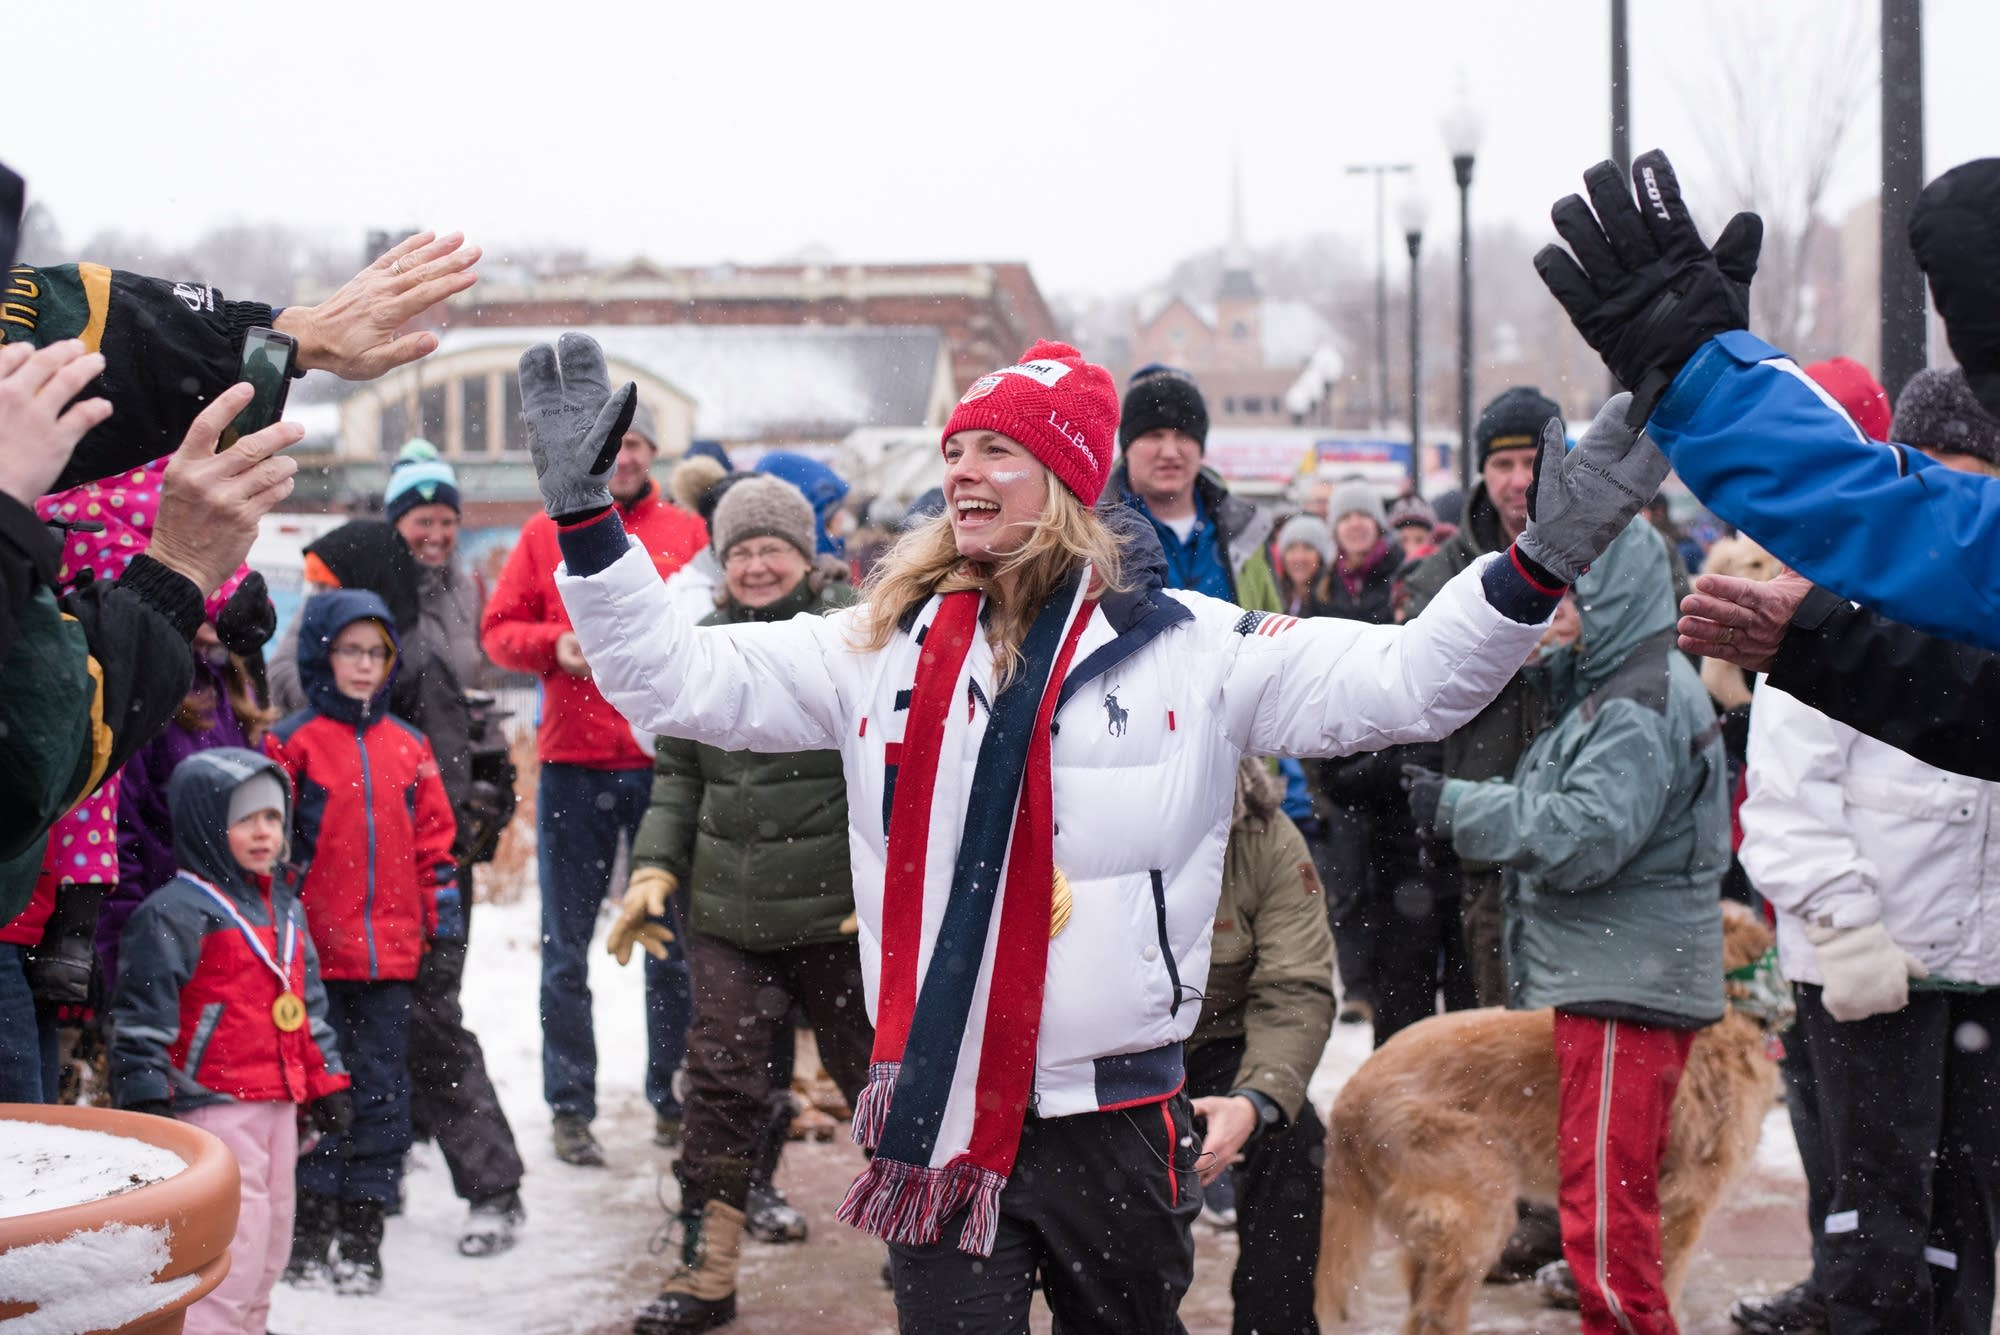 Olympic gold medalist Jessie Diggins greets a group of fans.